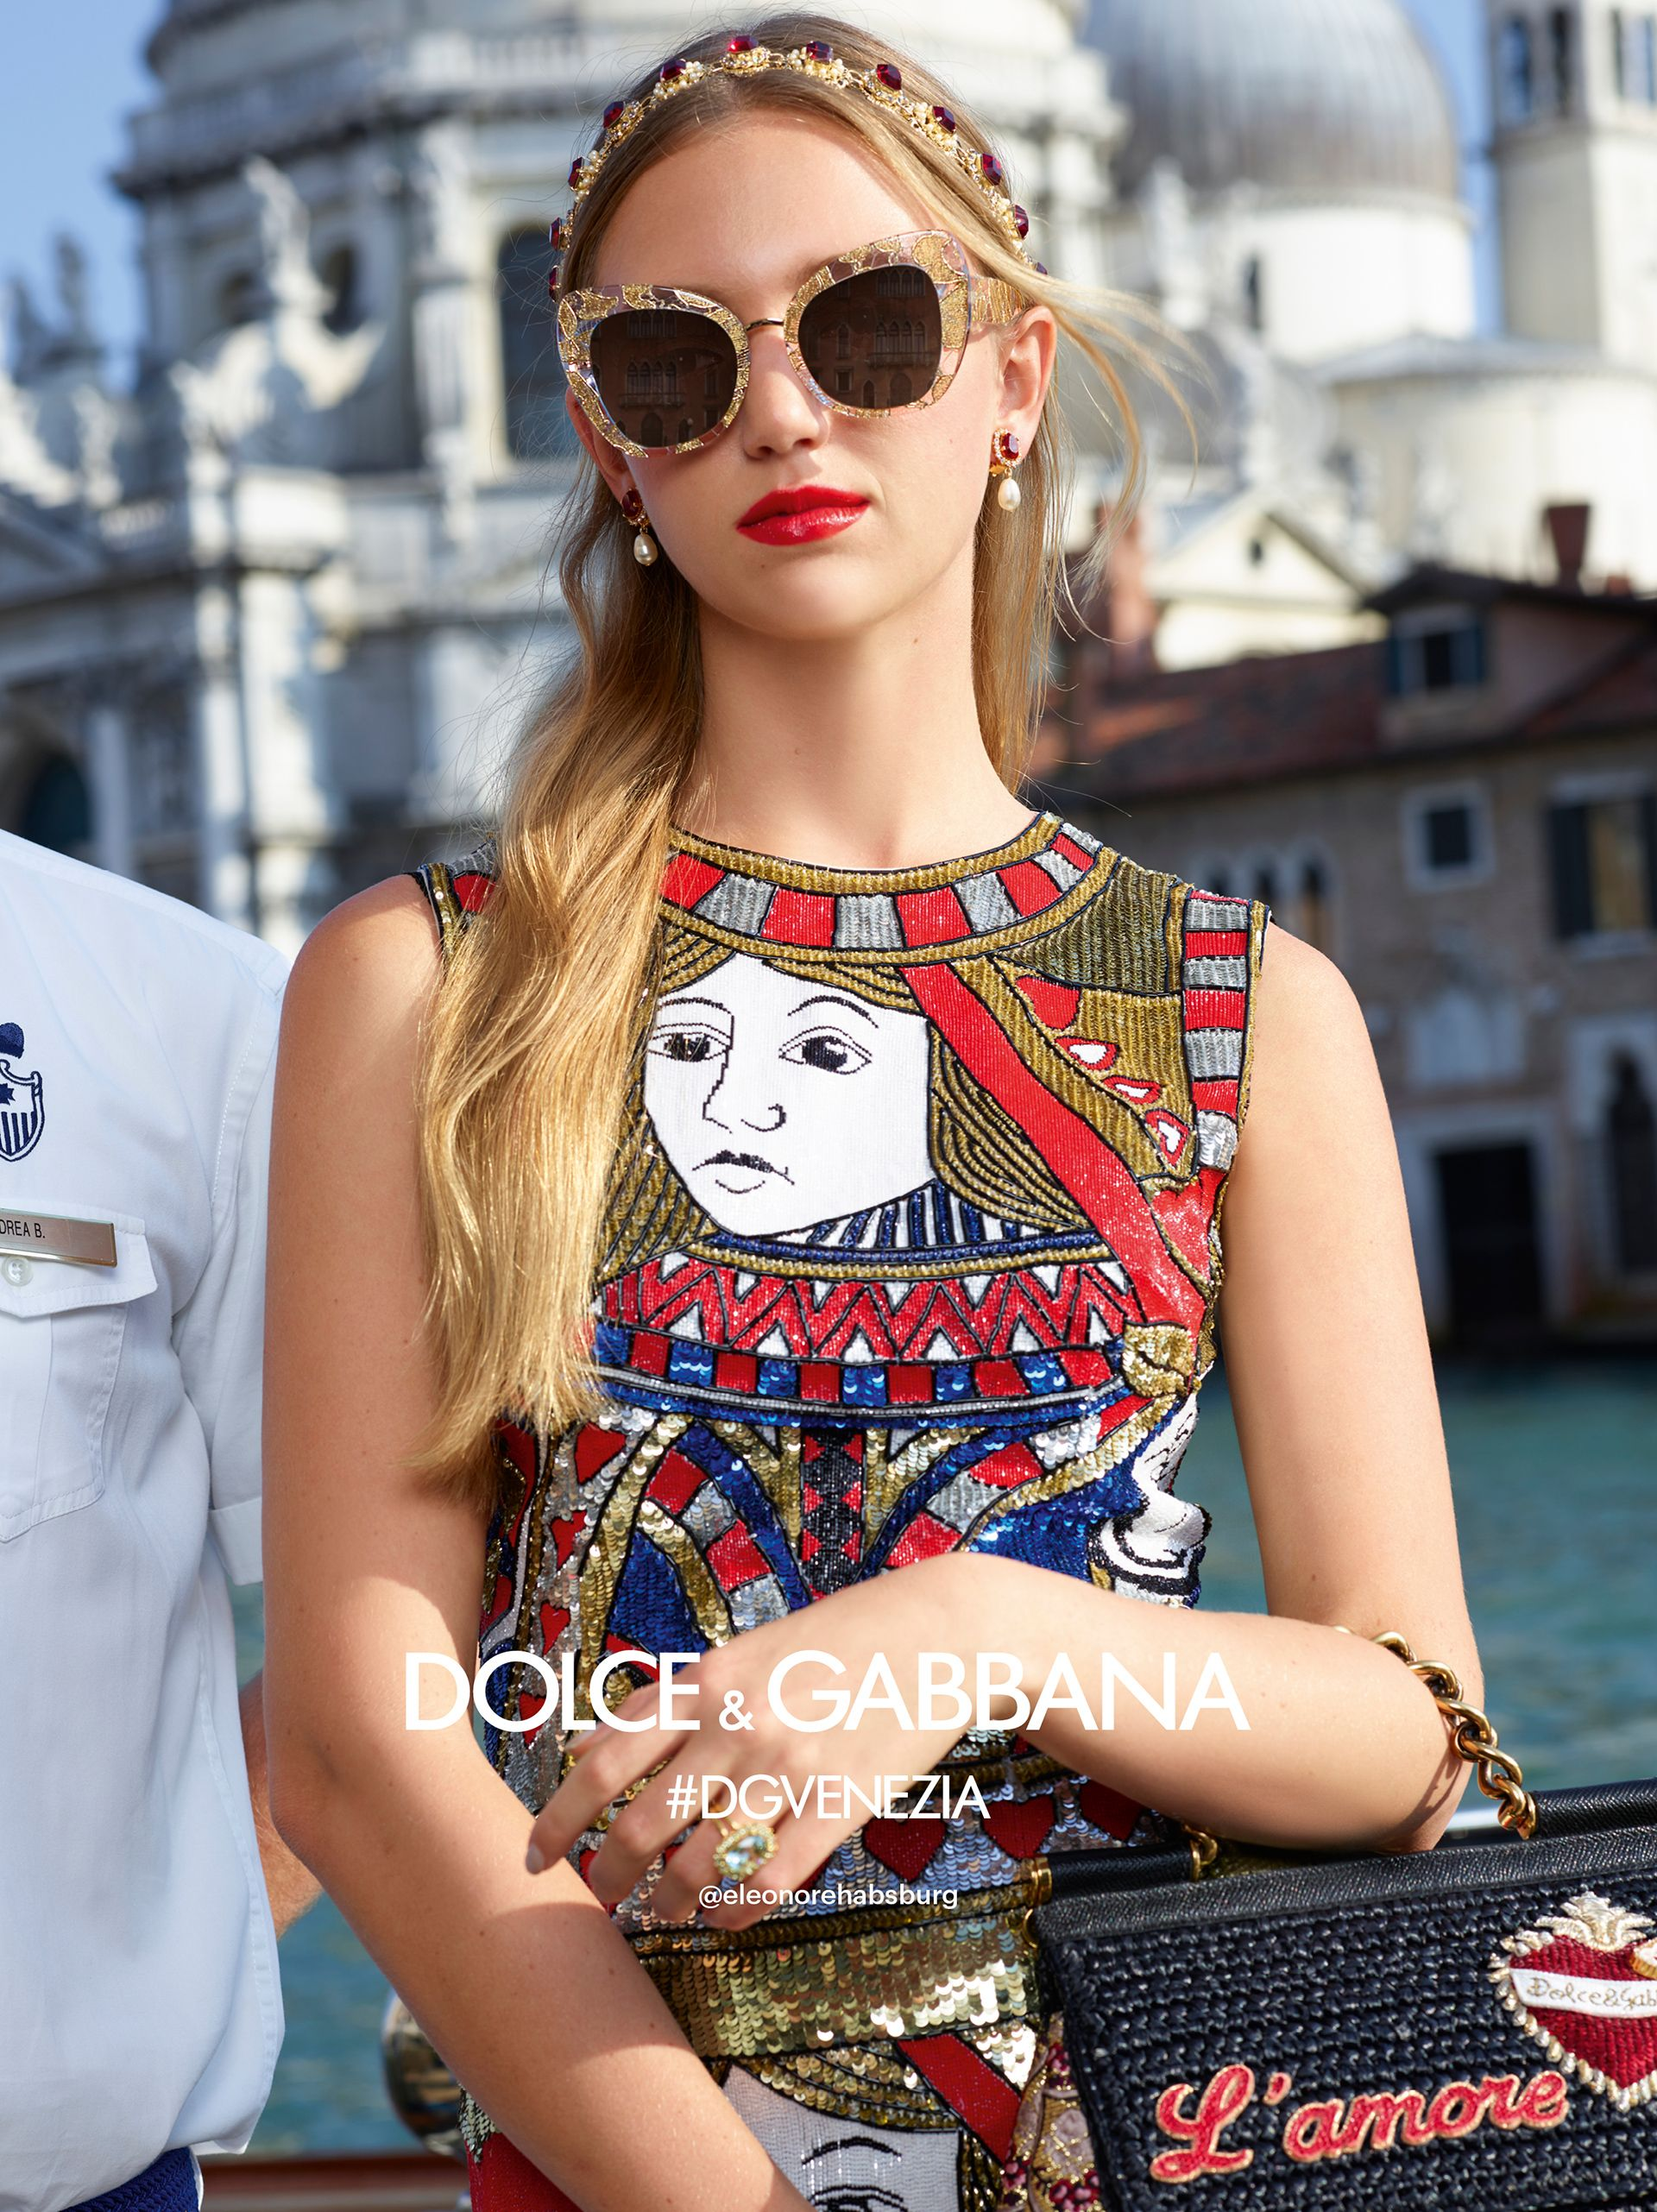 f1666533b91 The Dolce Gabbana Spring Summer 2018 Campaign shot in Venice by The Morelli  Brothers.  DGSS18  DGCampaign  DGMillennials  DGEyewear  DGQueenof❤️ ...